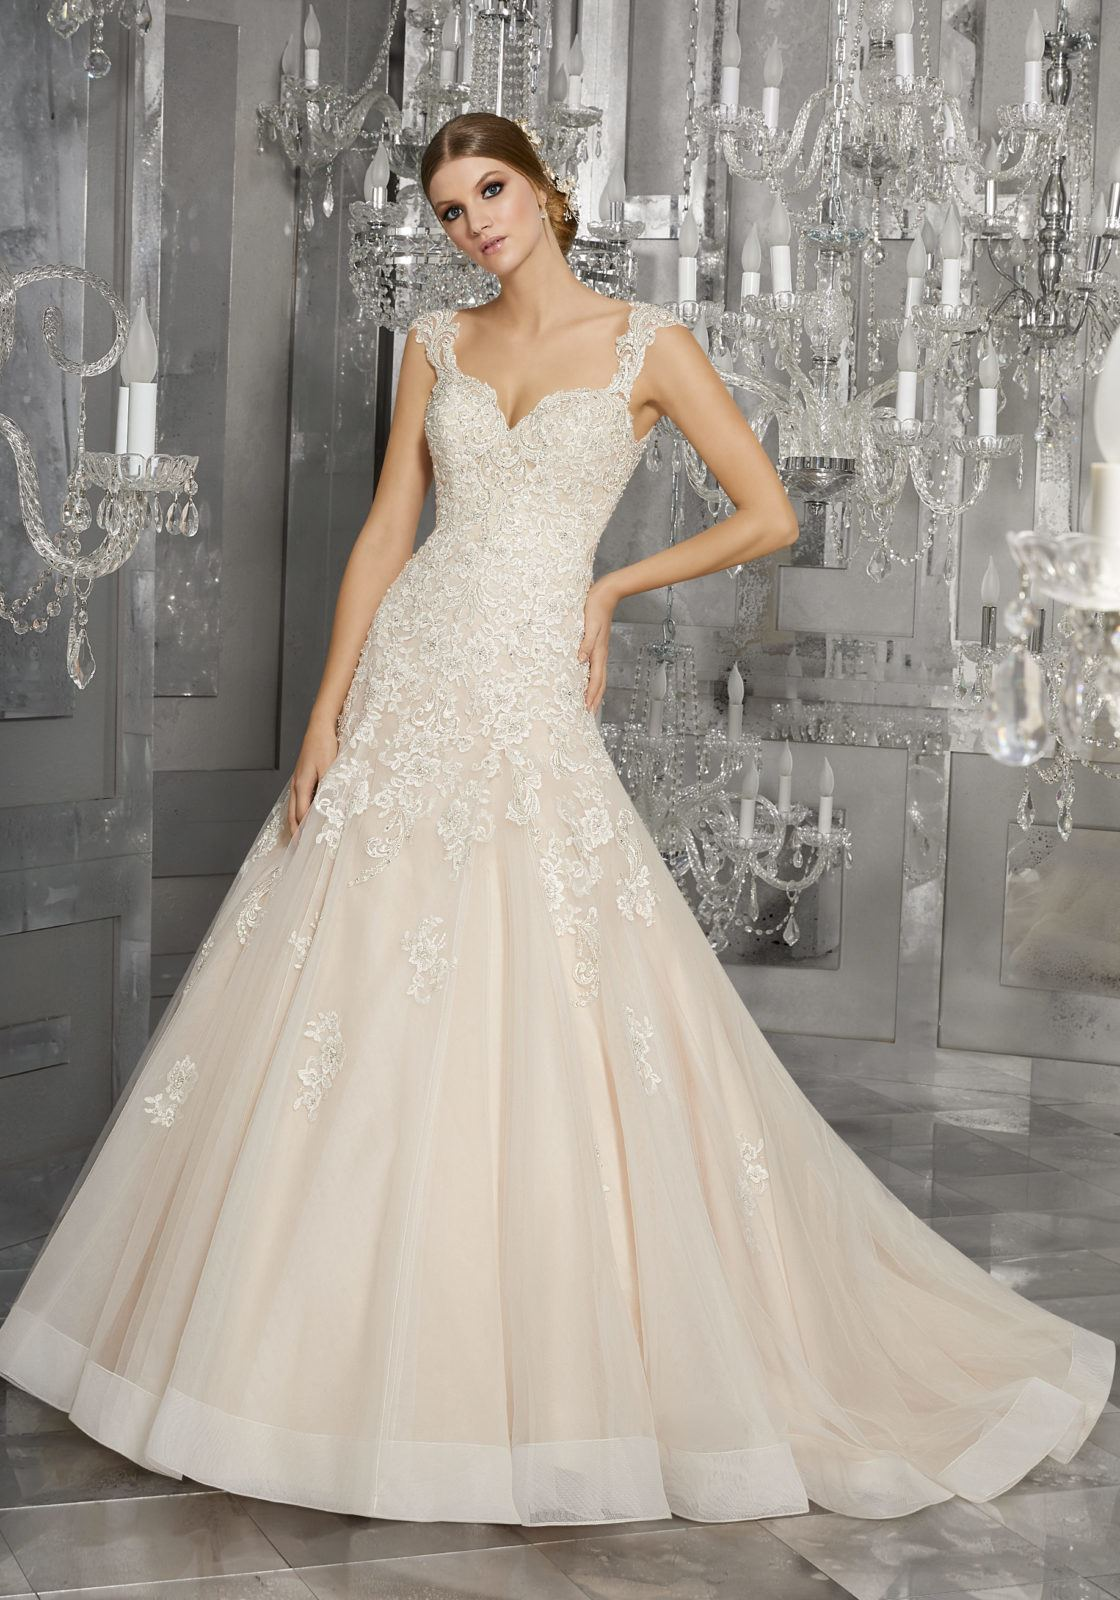 Kathryn's Bridal & Dress Shop - 1